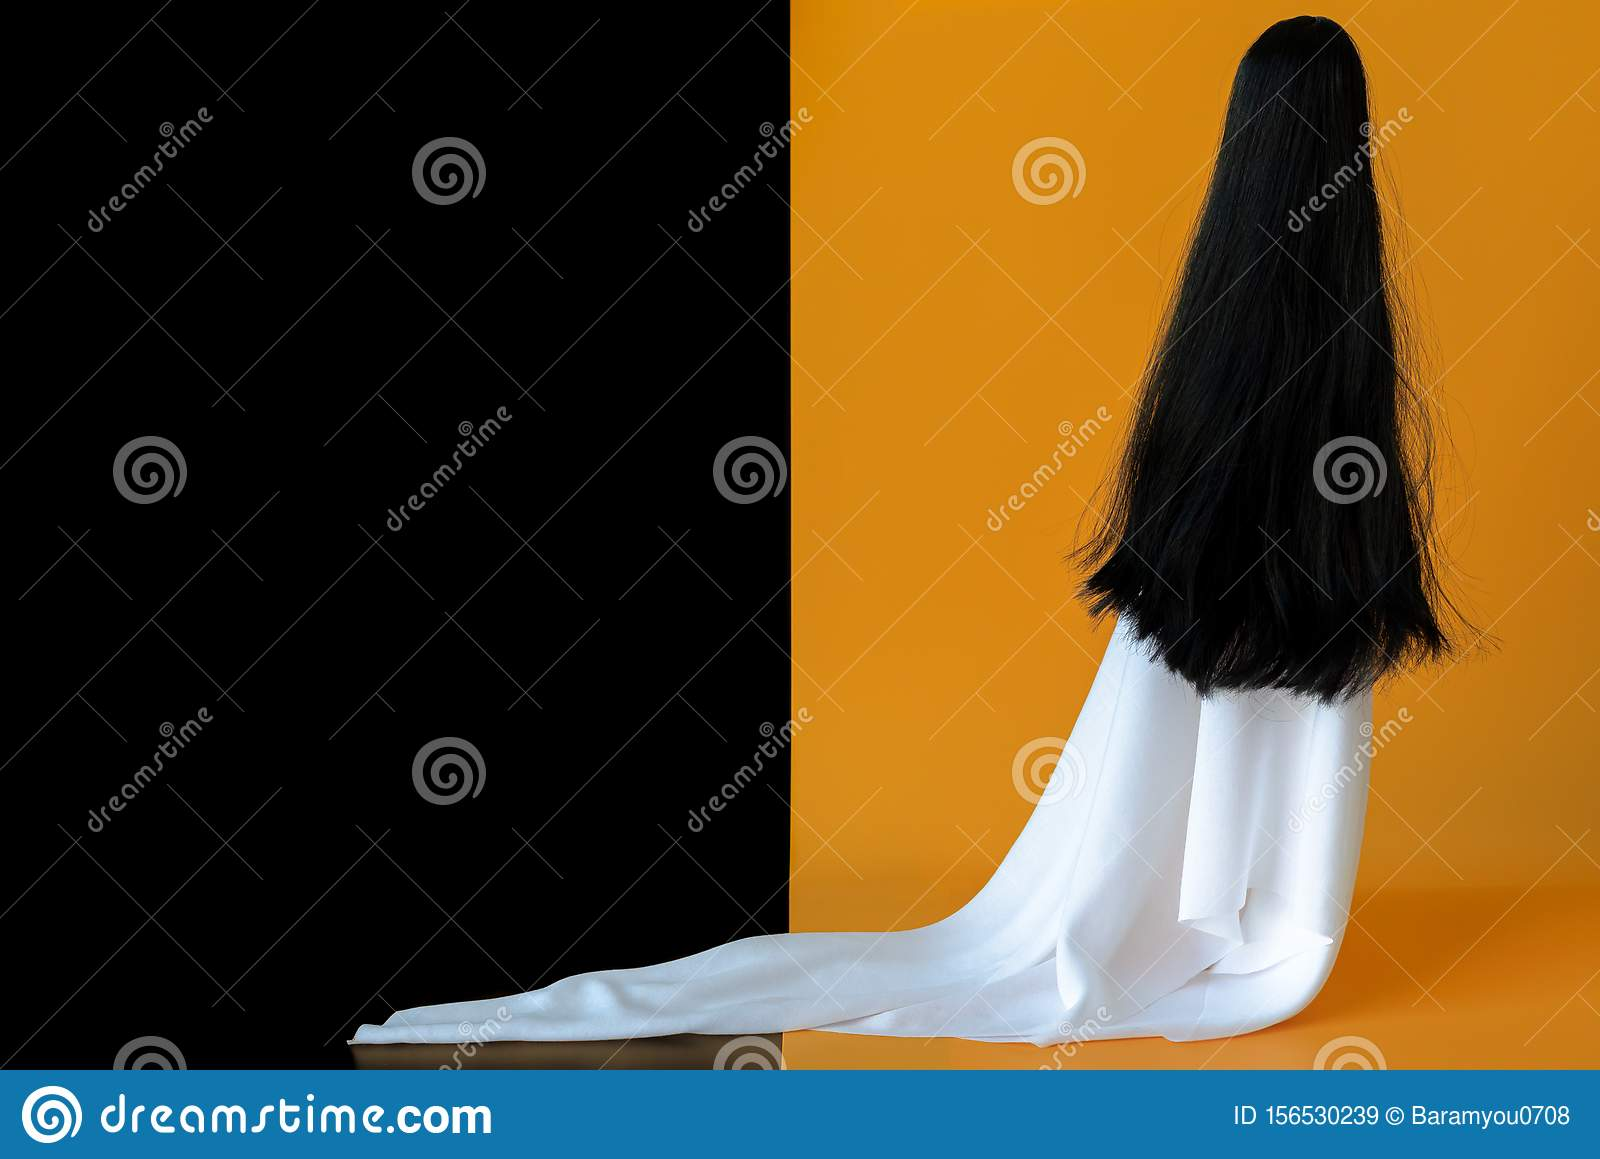 Long hair female ghost with white sheet costume with black and orange background. Minimal Halloween scary concept